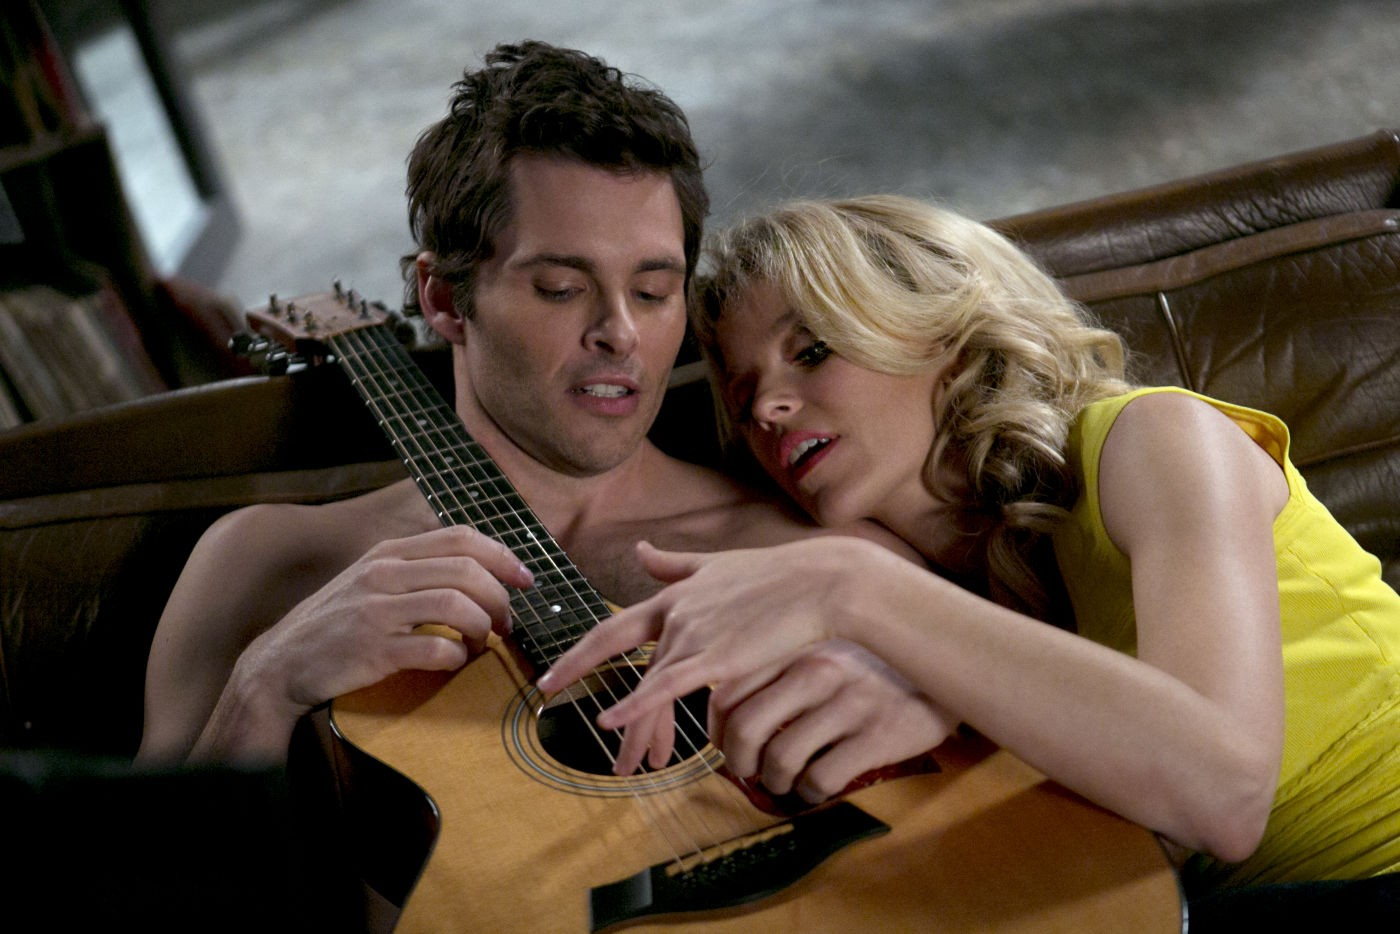 Una notte in giallo: Elizabeth Banks con James Marsden, nei panni di Meghan e Gordon, in una scena della commedia